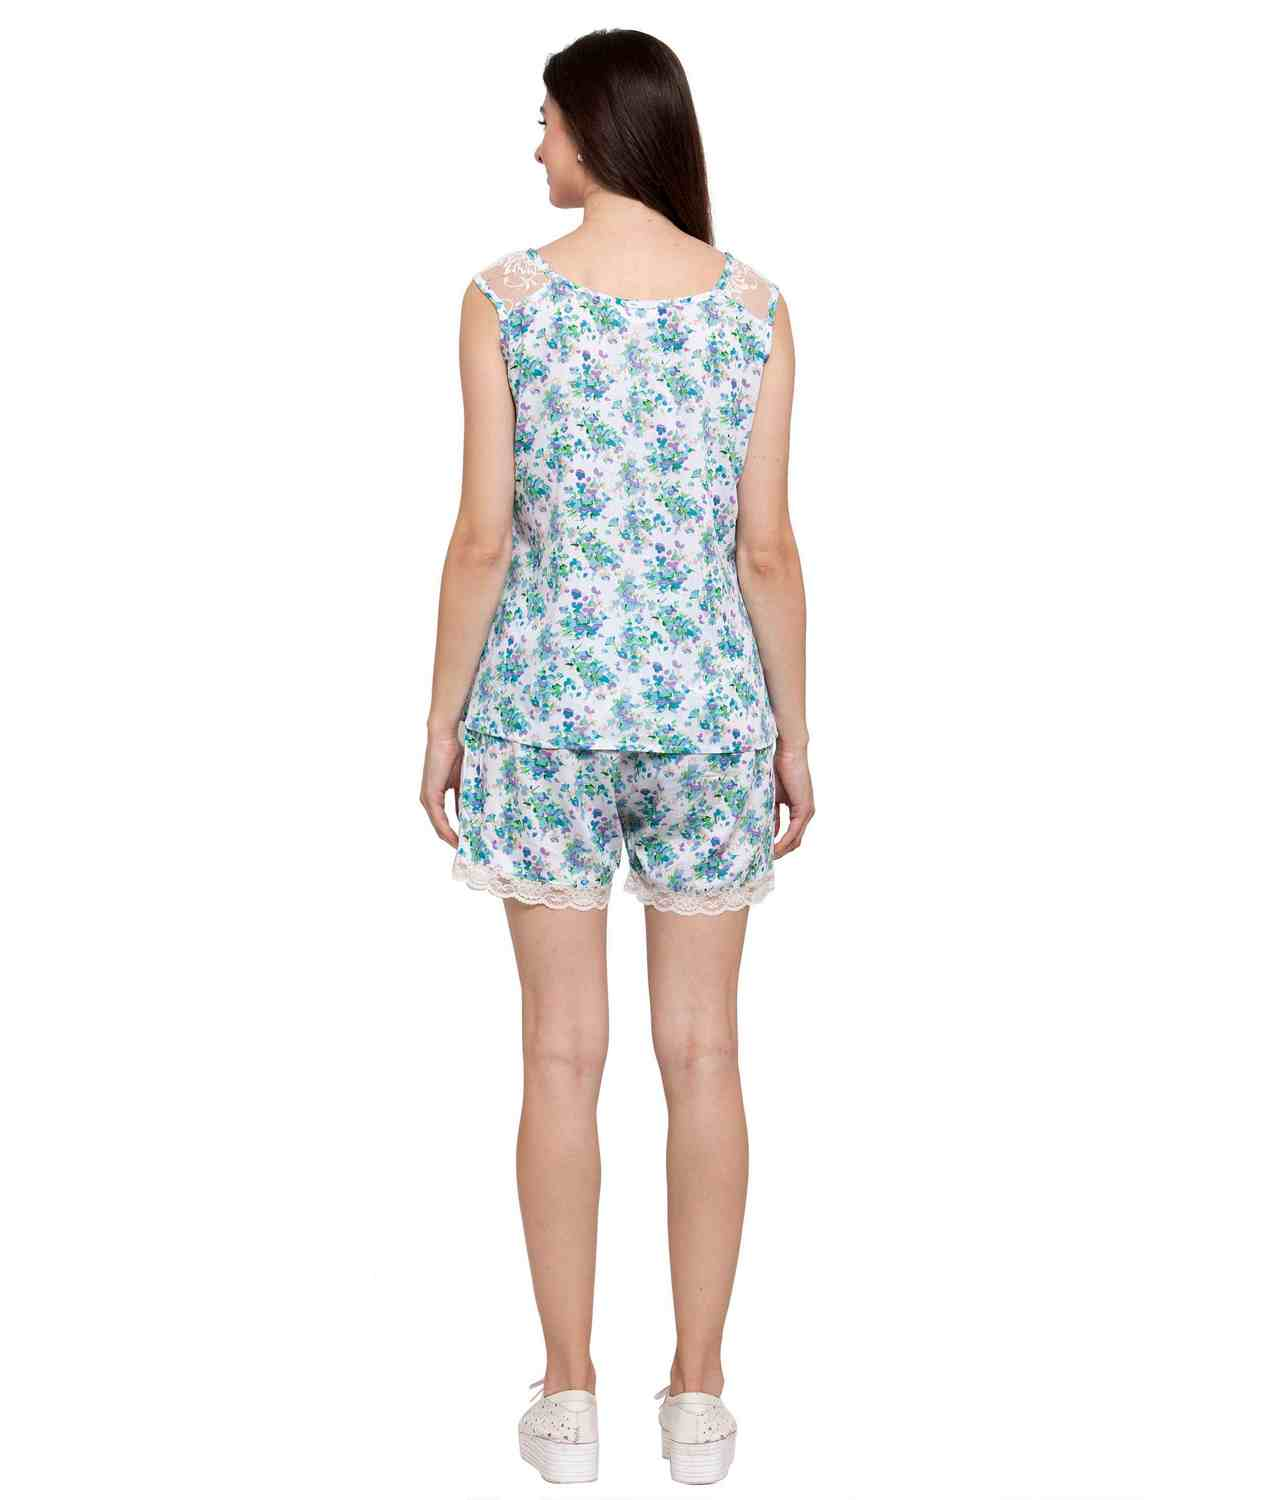 Floral Print Night Top and Shorts Set in Blue